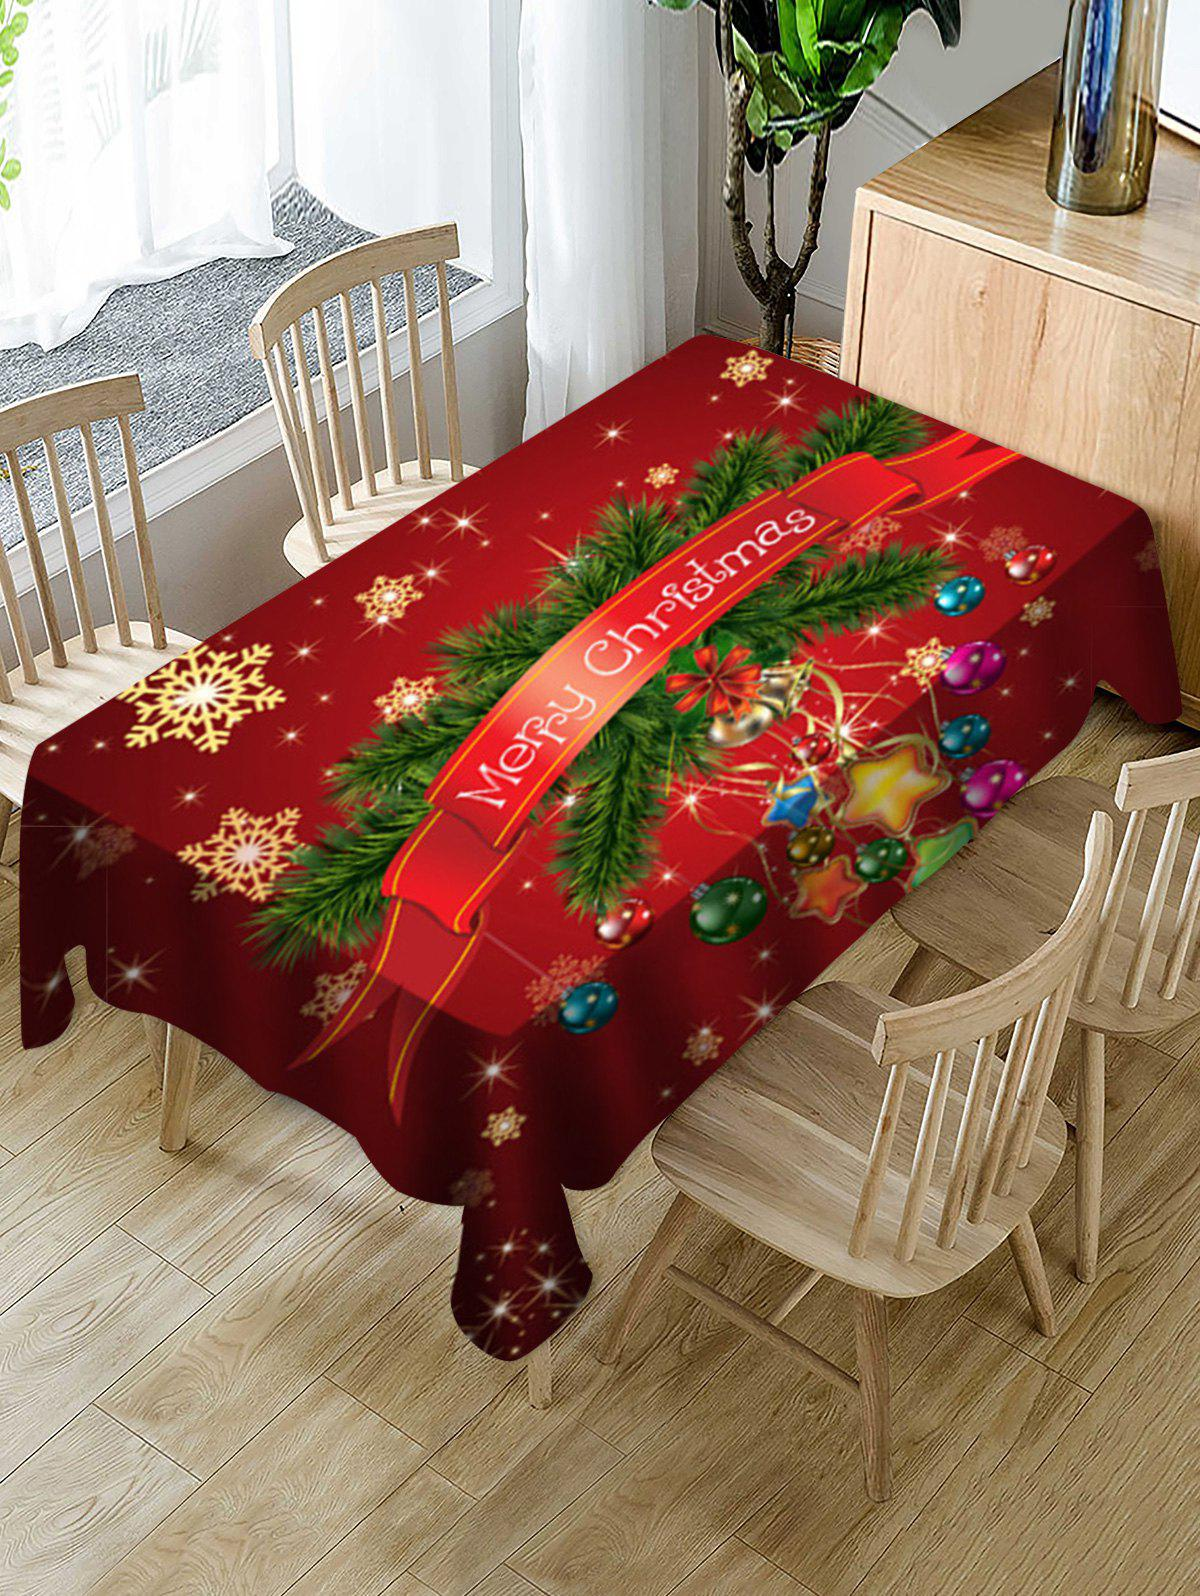 Chic Merry Christmas Snowflake Print Fabric Waterproof Tablecloth